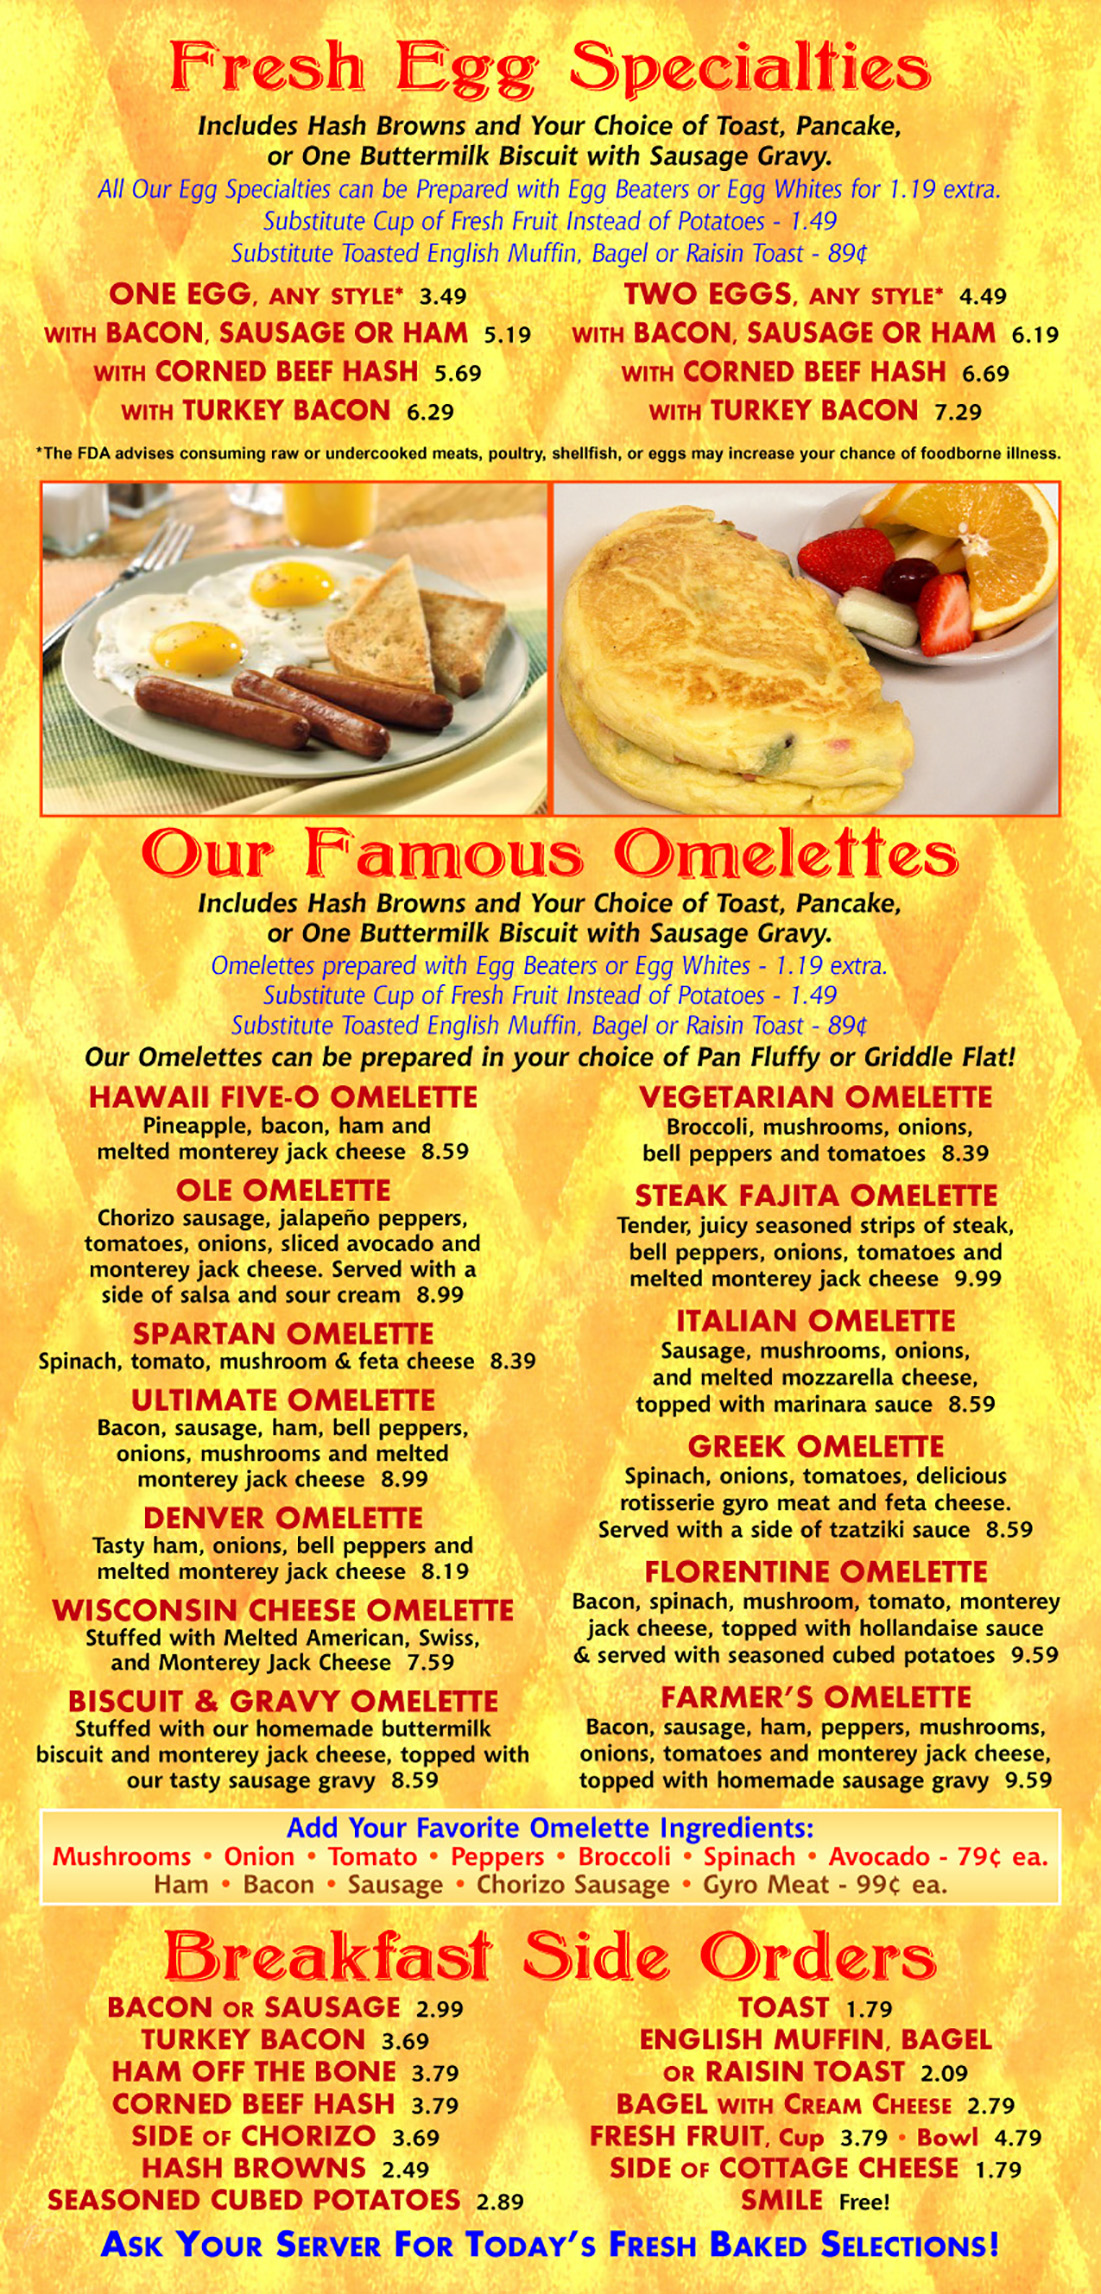 Egg Specialties, Omelettes